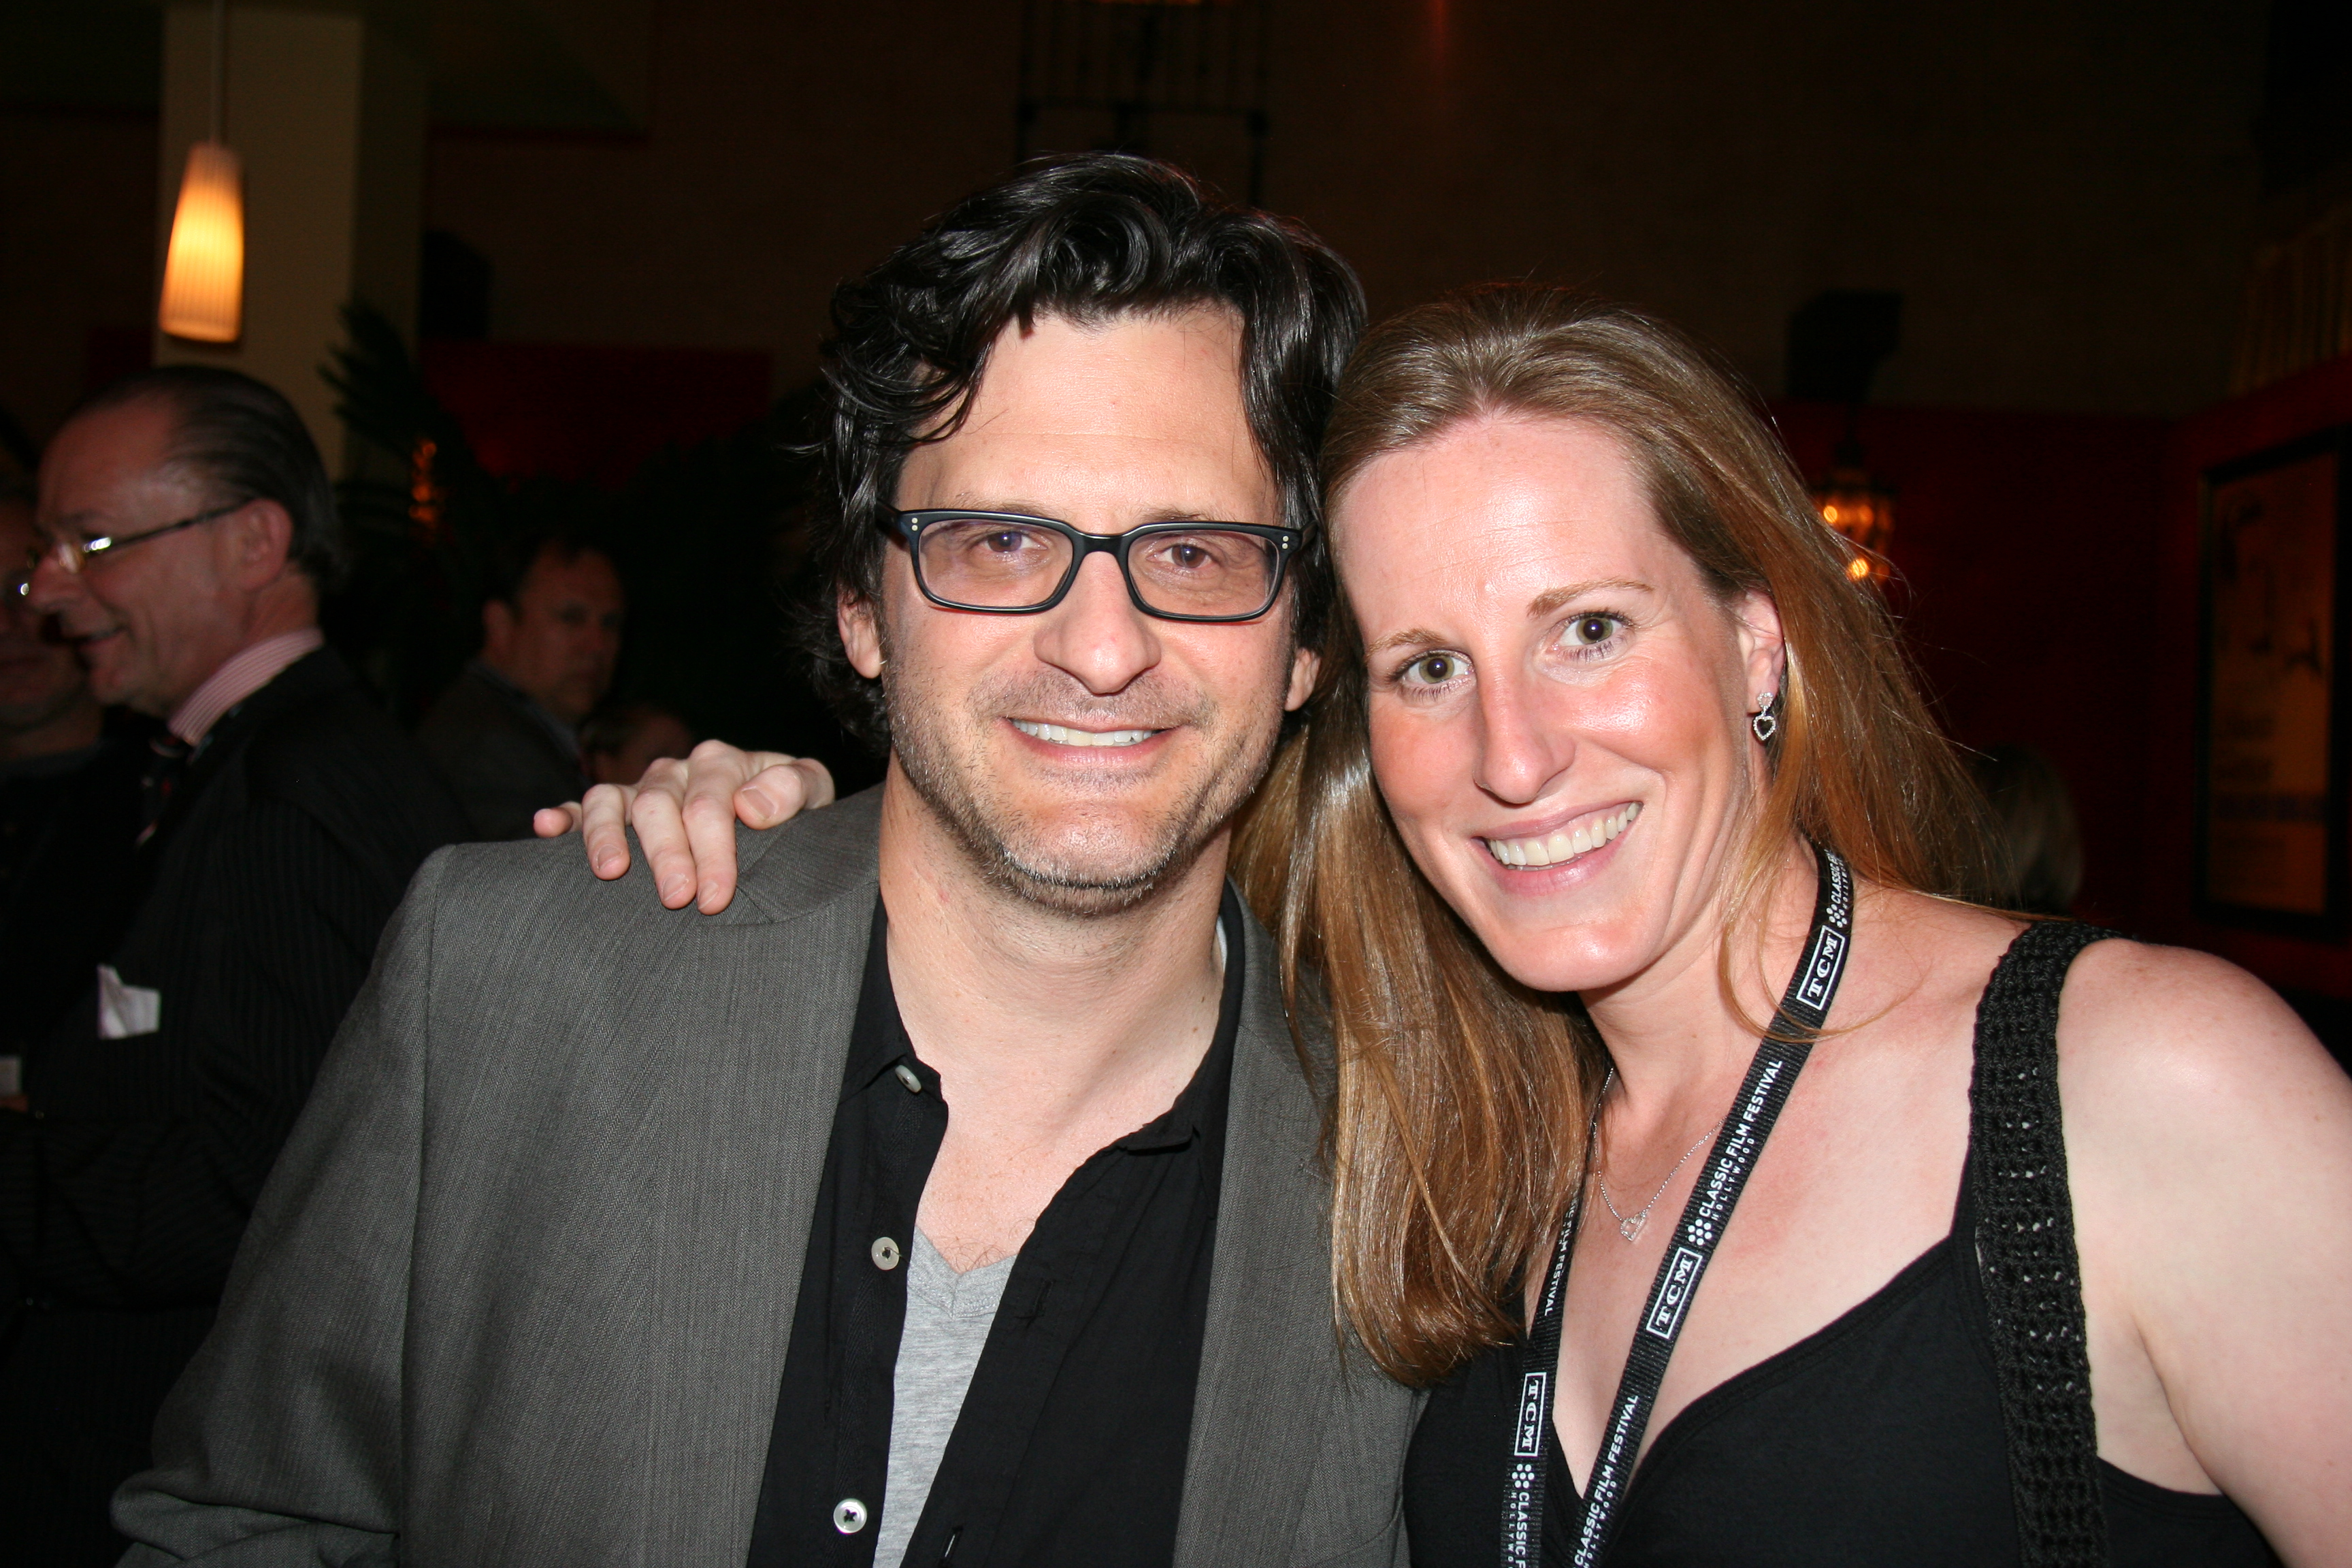 Ben dating Mankiewicz